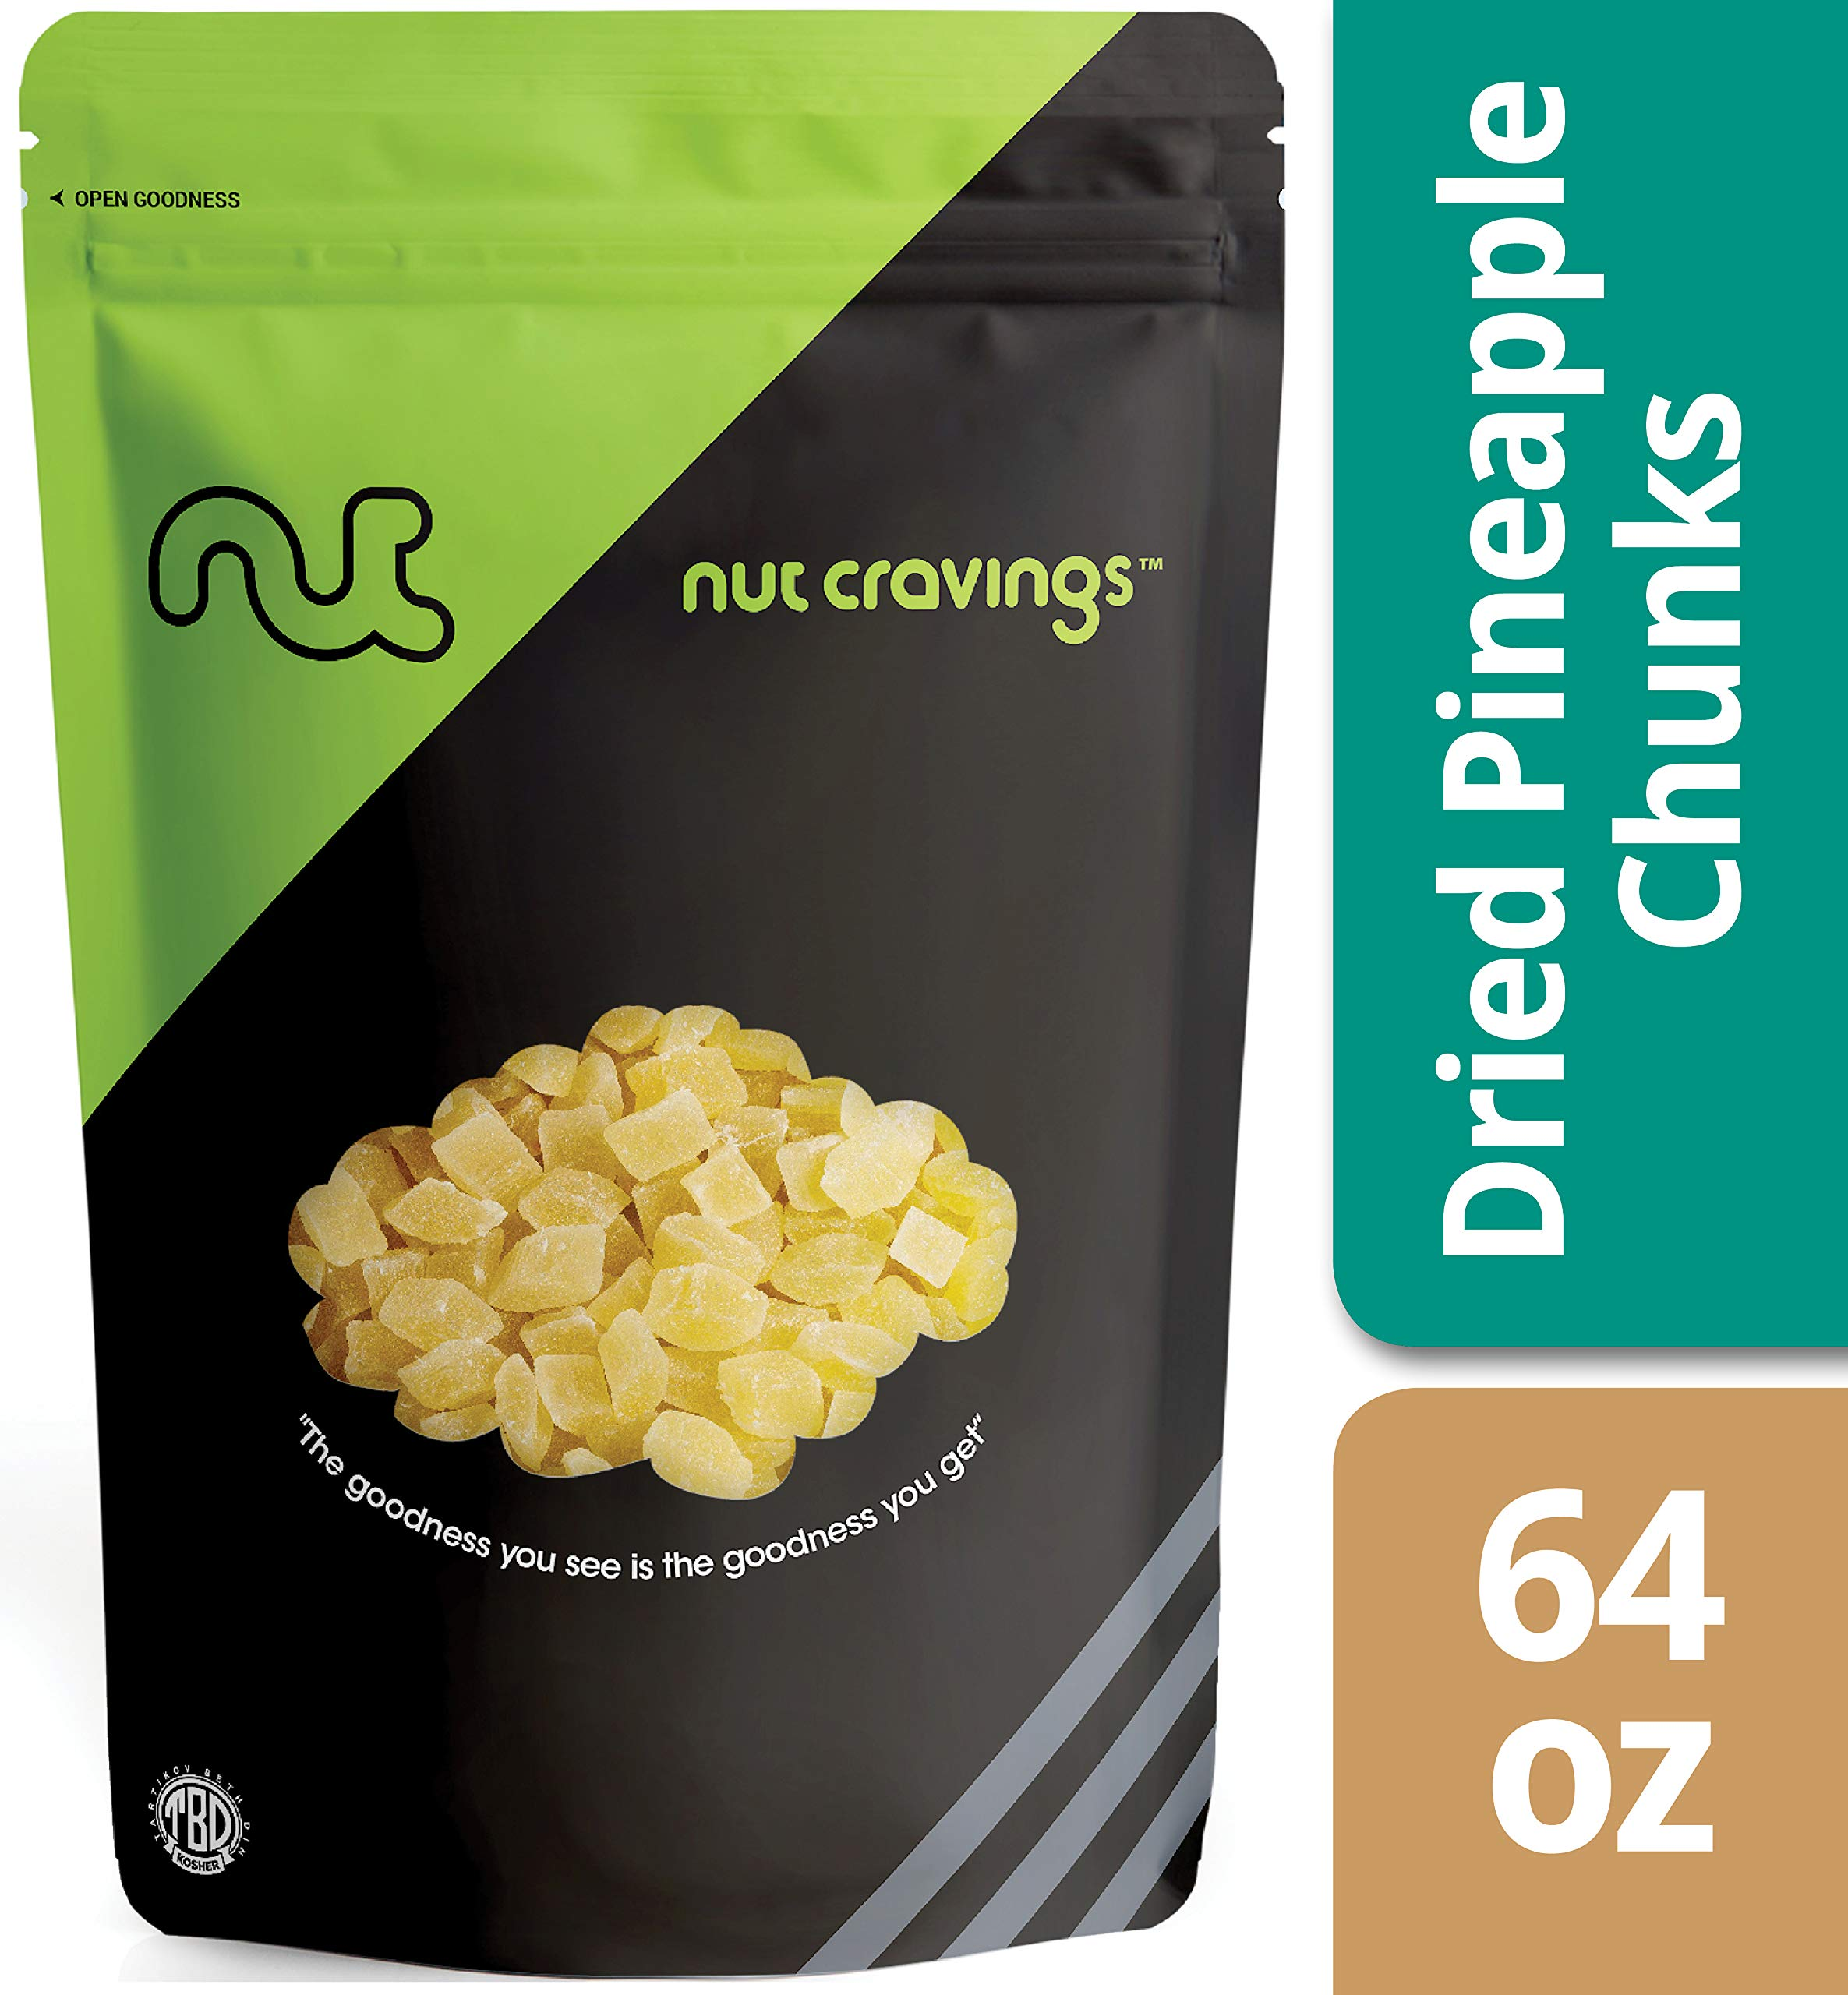 Nut Cravings Dried Pineapple Chunks - Sweet, Healthy Dehydrated Fruit Snacks with Sugar Added - 64 Ounce by Nut Cravings